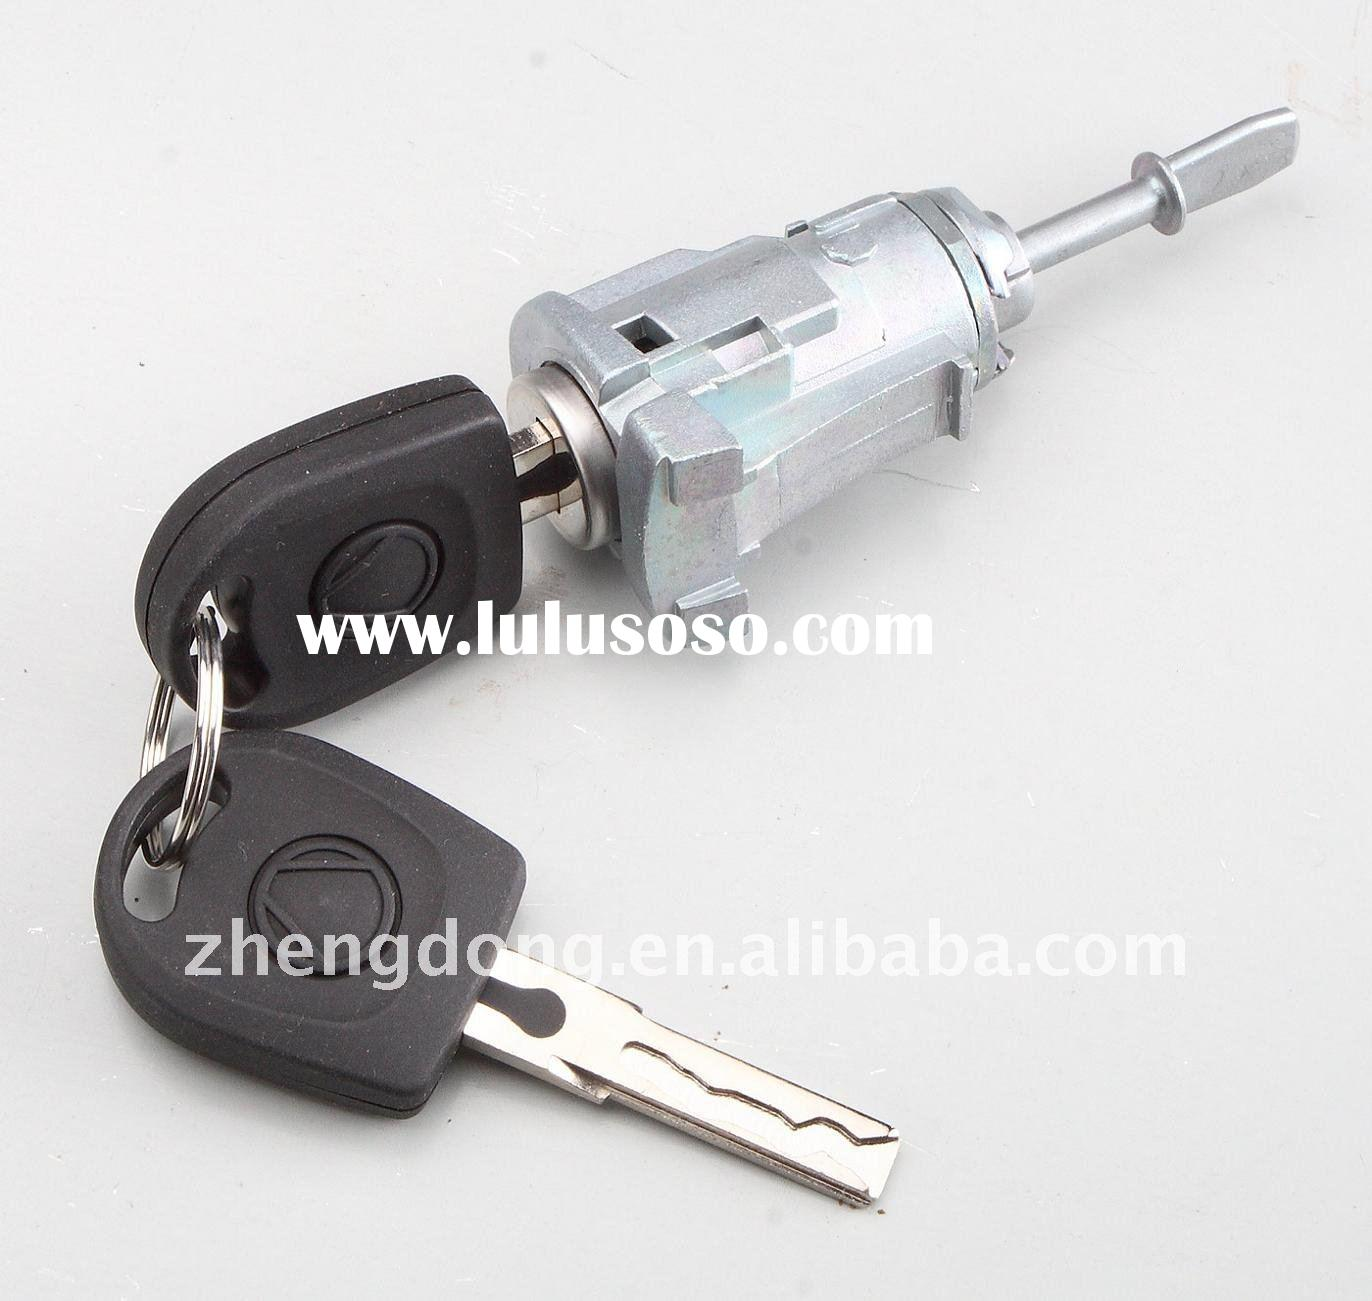 car Door Lock ( for vw polo ), auto accessory, Vw spare parts, vw door cylinder